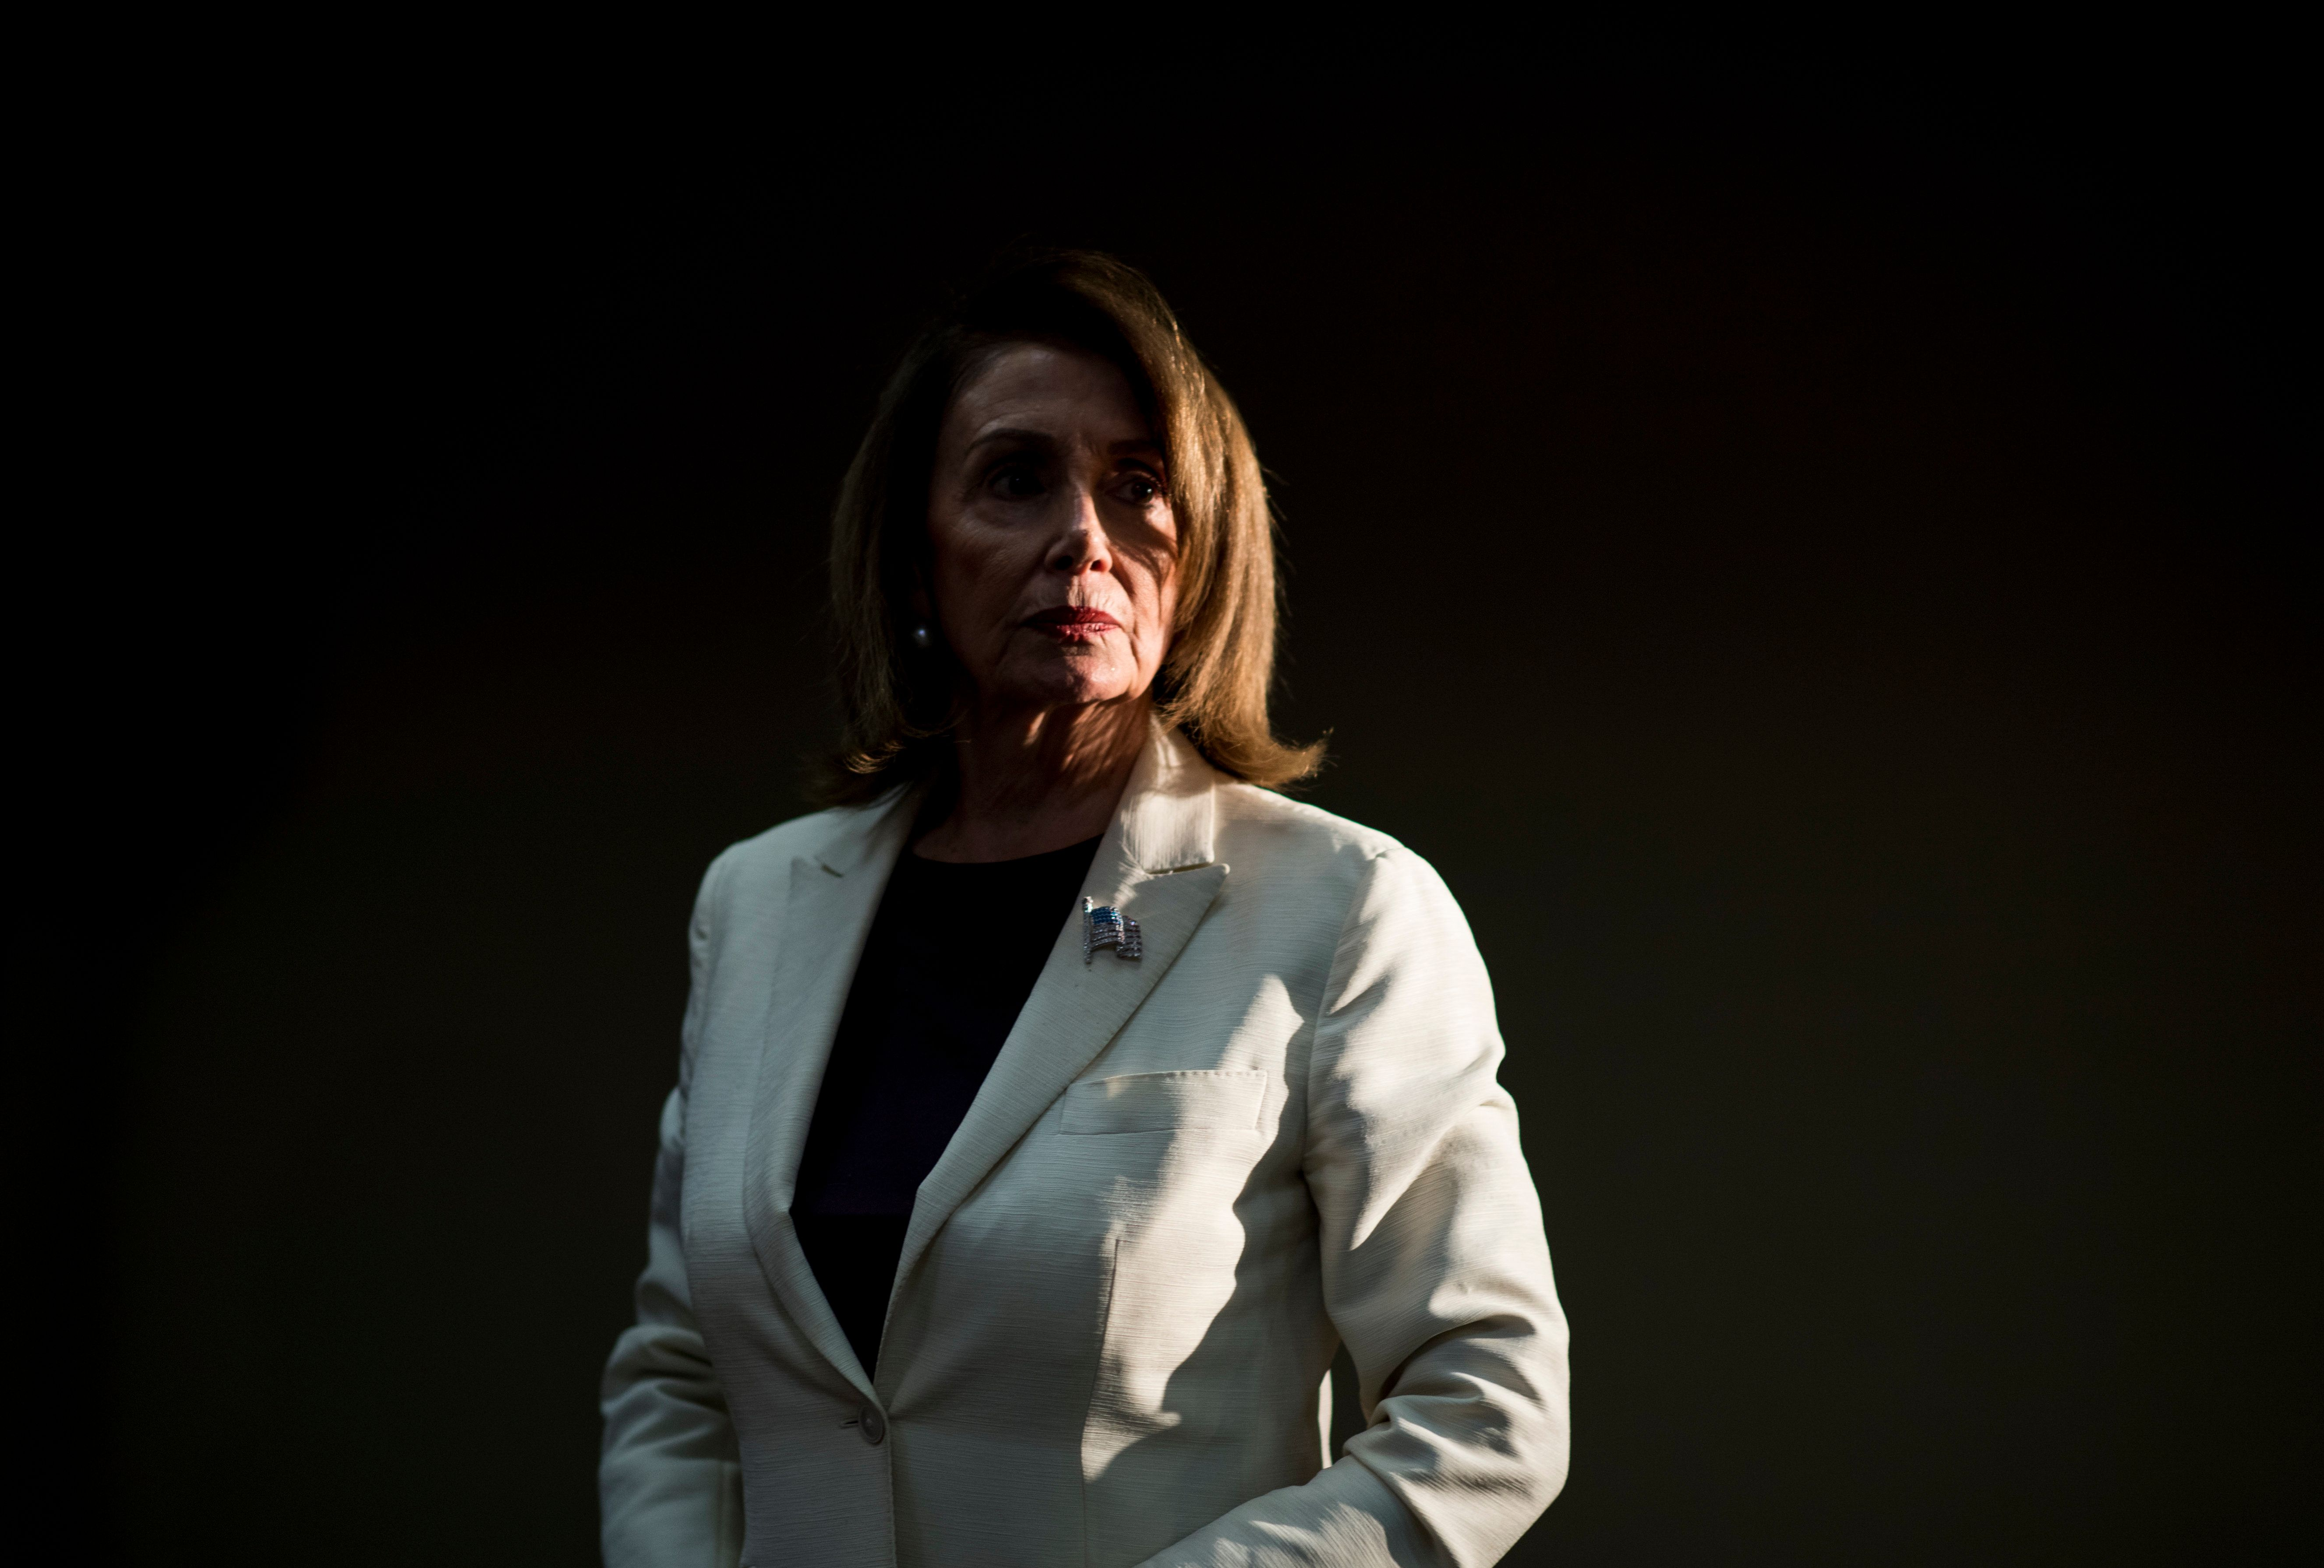 UNITED STATES - APRIL 10: Speaker of the House Nancy Pelosi, D-Calif., stands off to the side as other leaders speaks at the House Democrats'  2019 Issues Conference opening press conference at the Landsdowne Resort and Spa in Leesburg, Va., on Wednesday, April 10, 2019. (Photo By Bill Clark/CQ Roll Call)